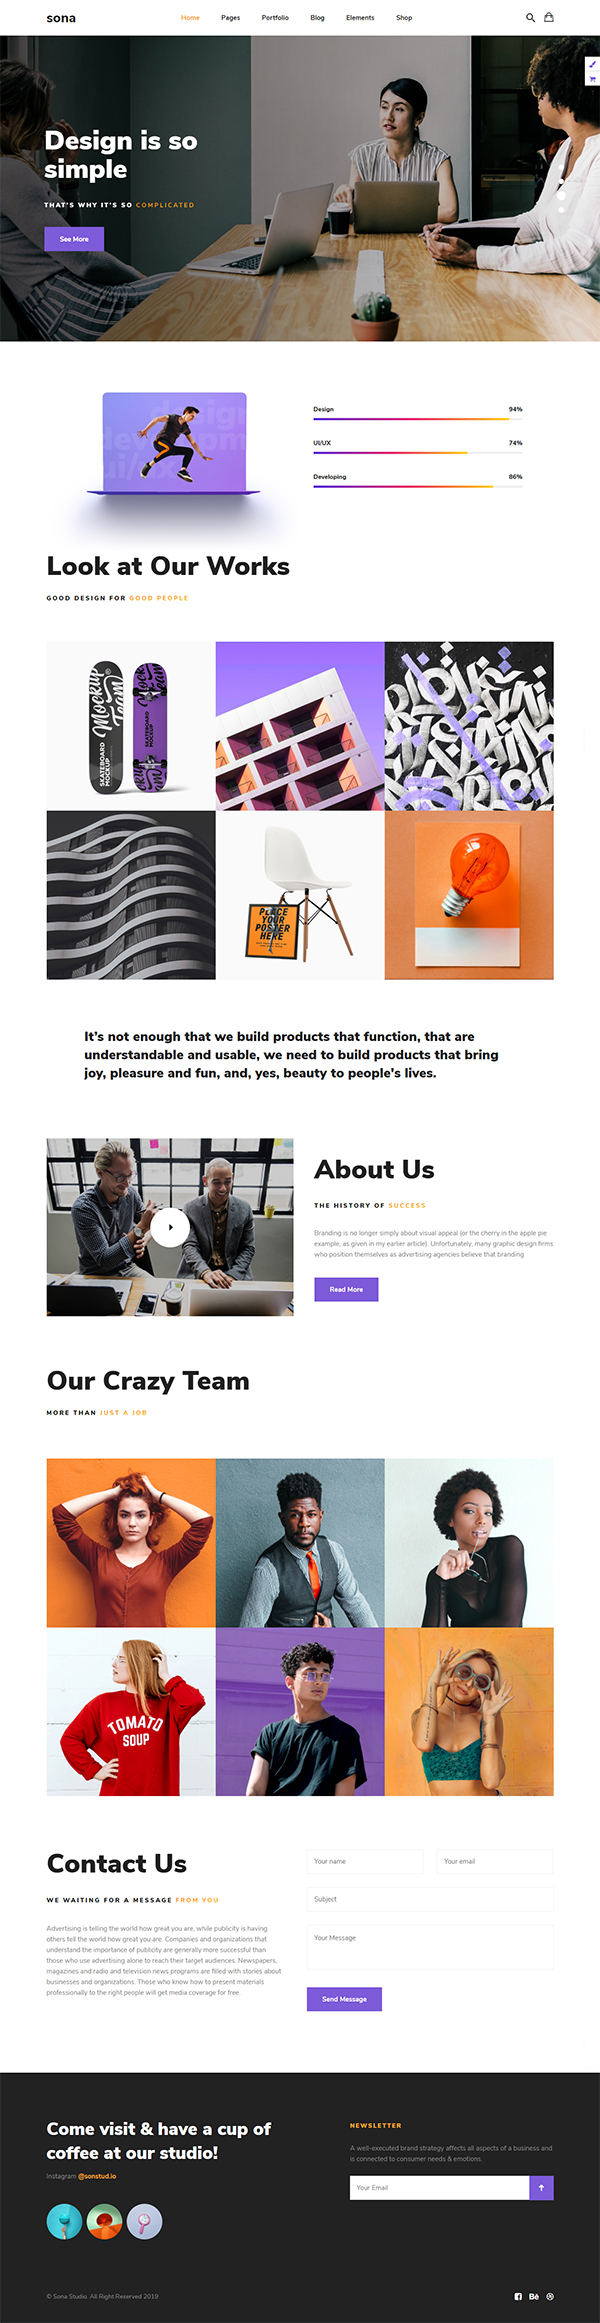 Sona - Web Design and Digital Marketing Agency WordPress